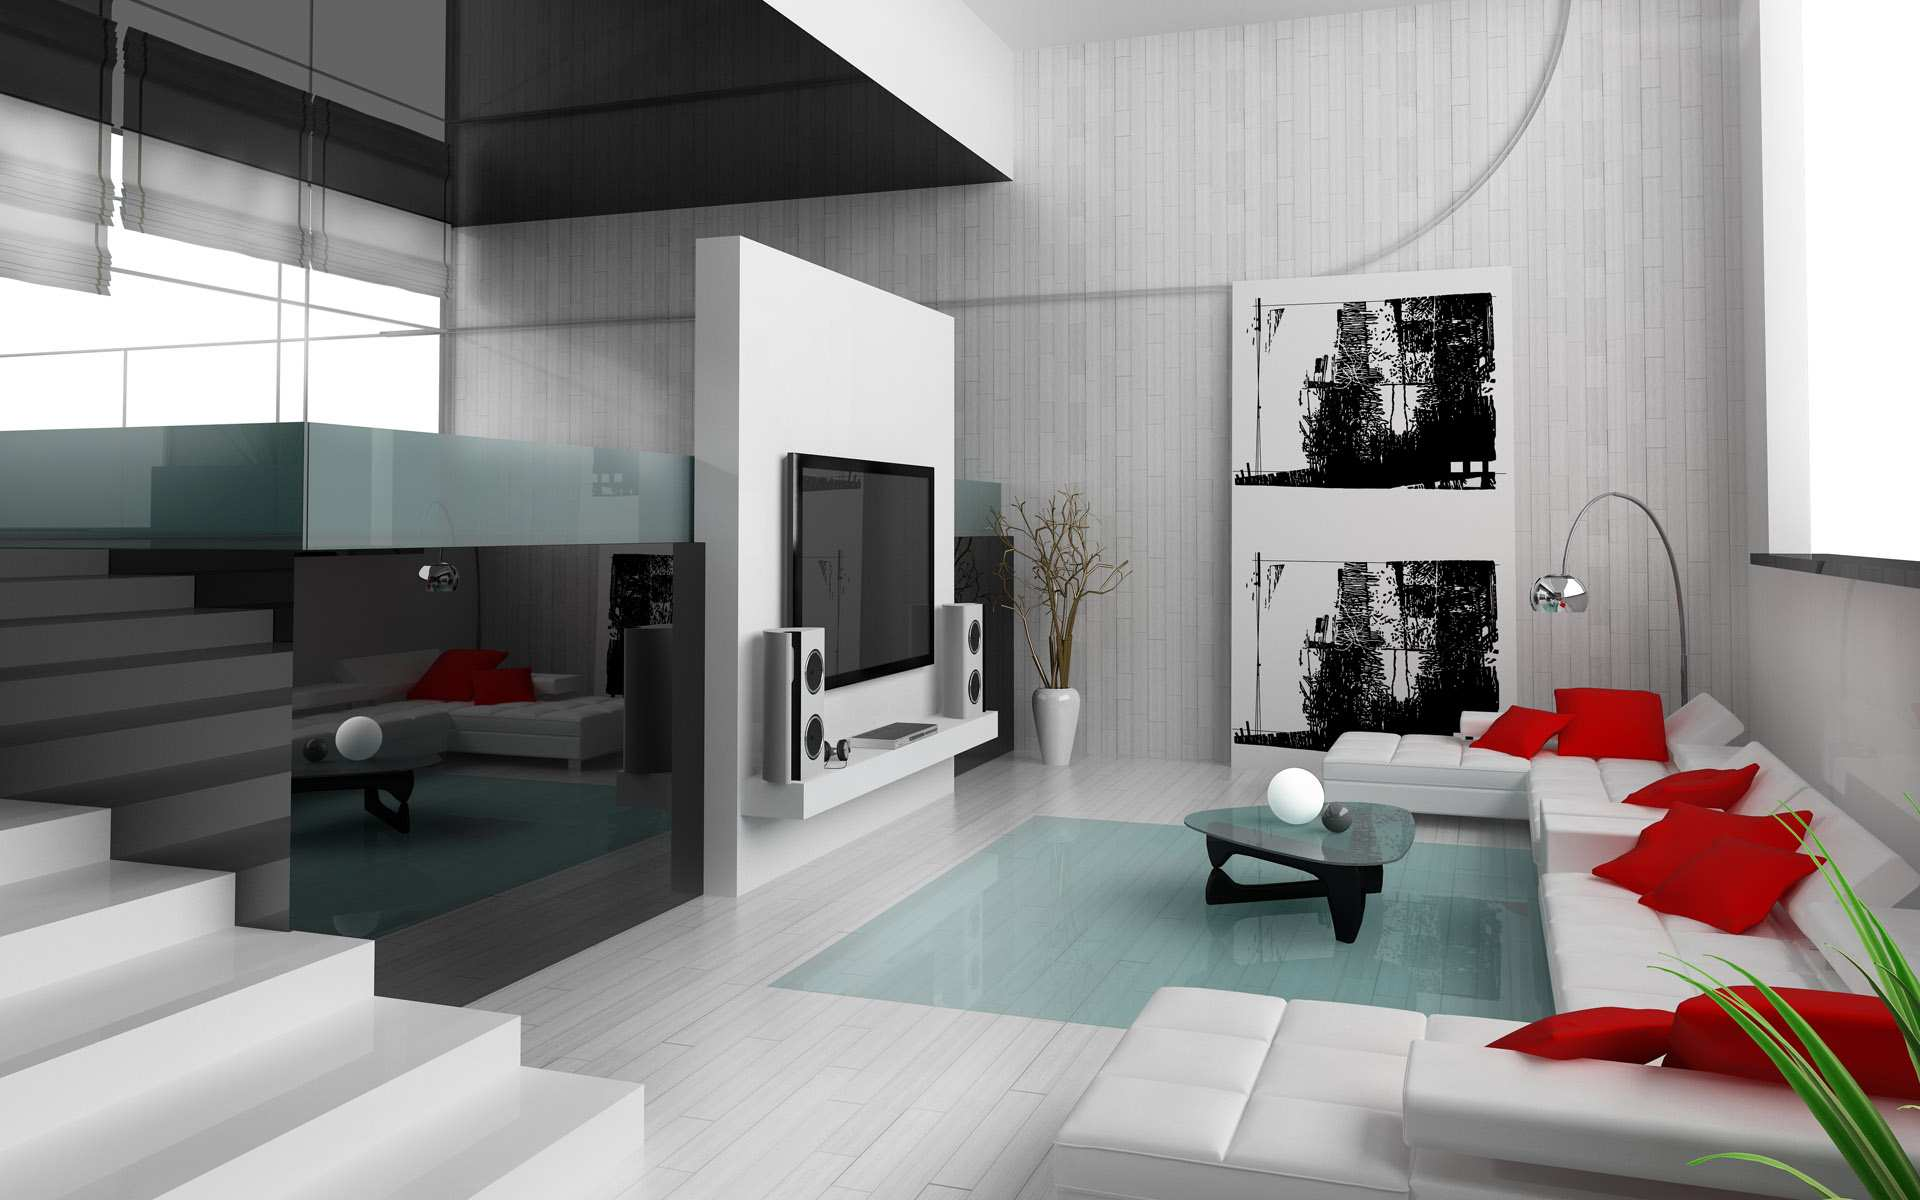 23 modern interior design ideas for the perfect home for Contemporary interior design ideas